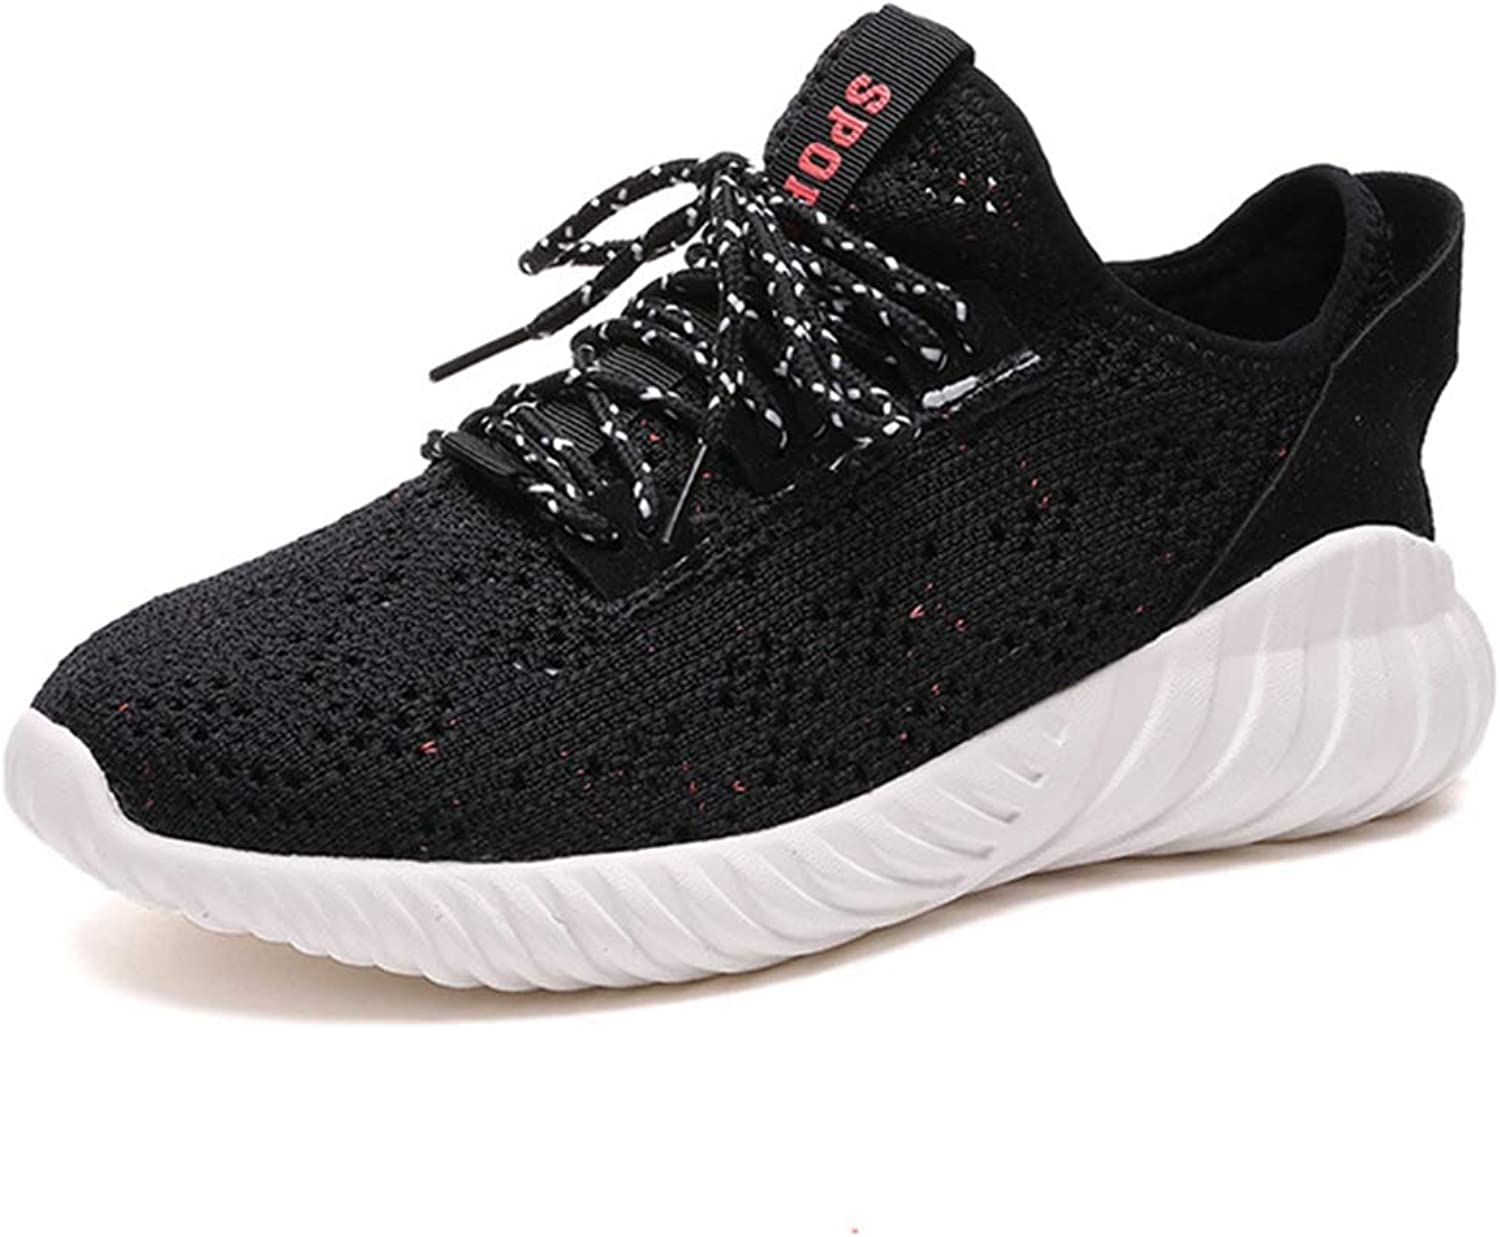 GIY Women's Fashion Sneakers Lightweight Breathable Walking shoes Athletic Tennis Sport Running shoes